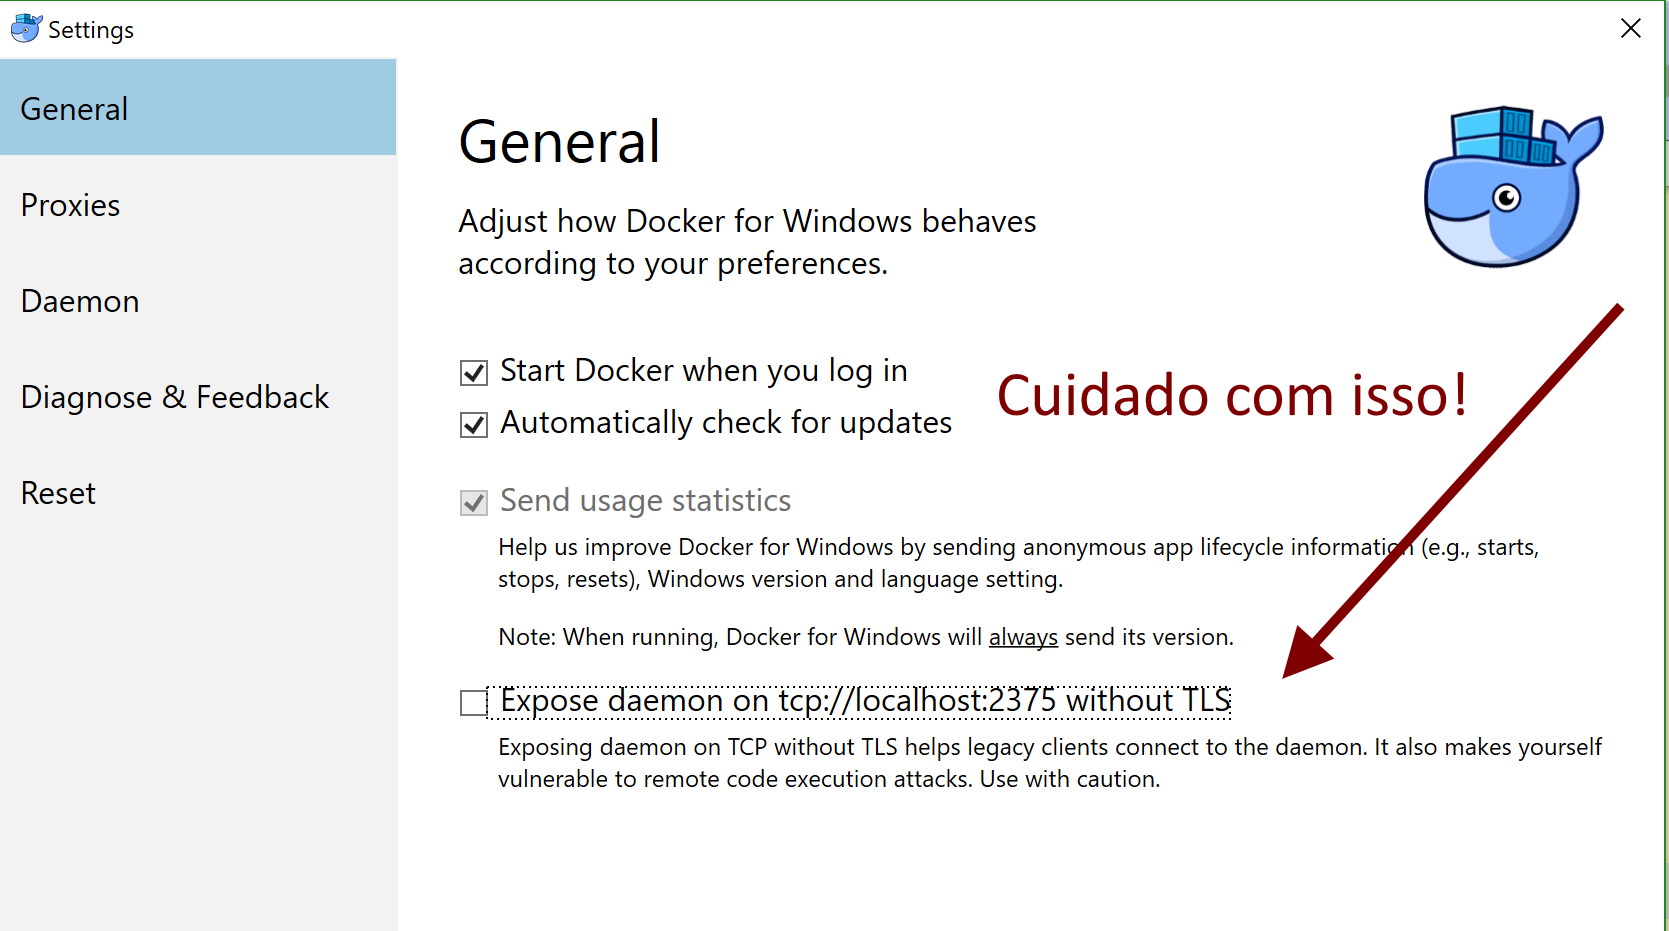 Abrindo a porta 2375 sem TLS do Docker